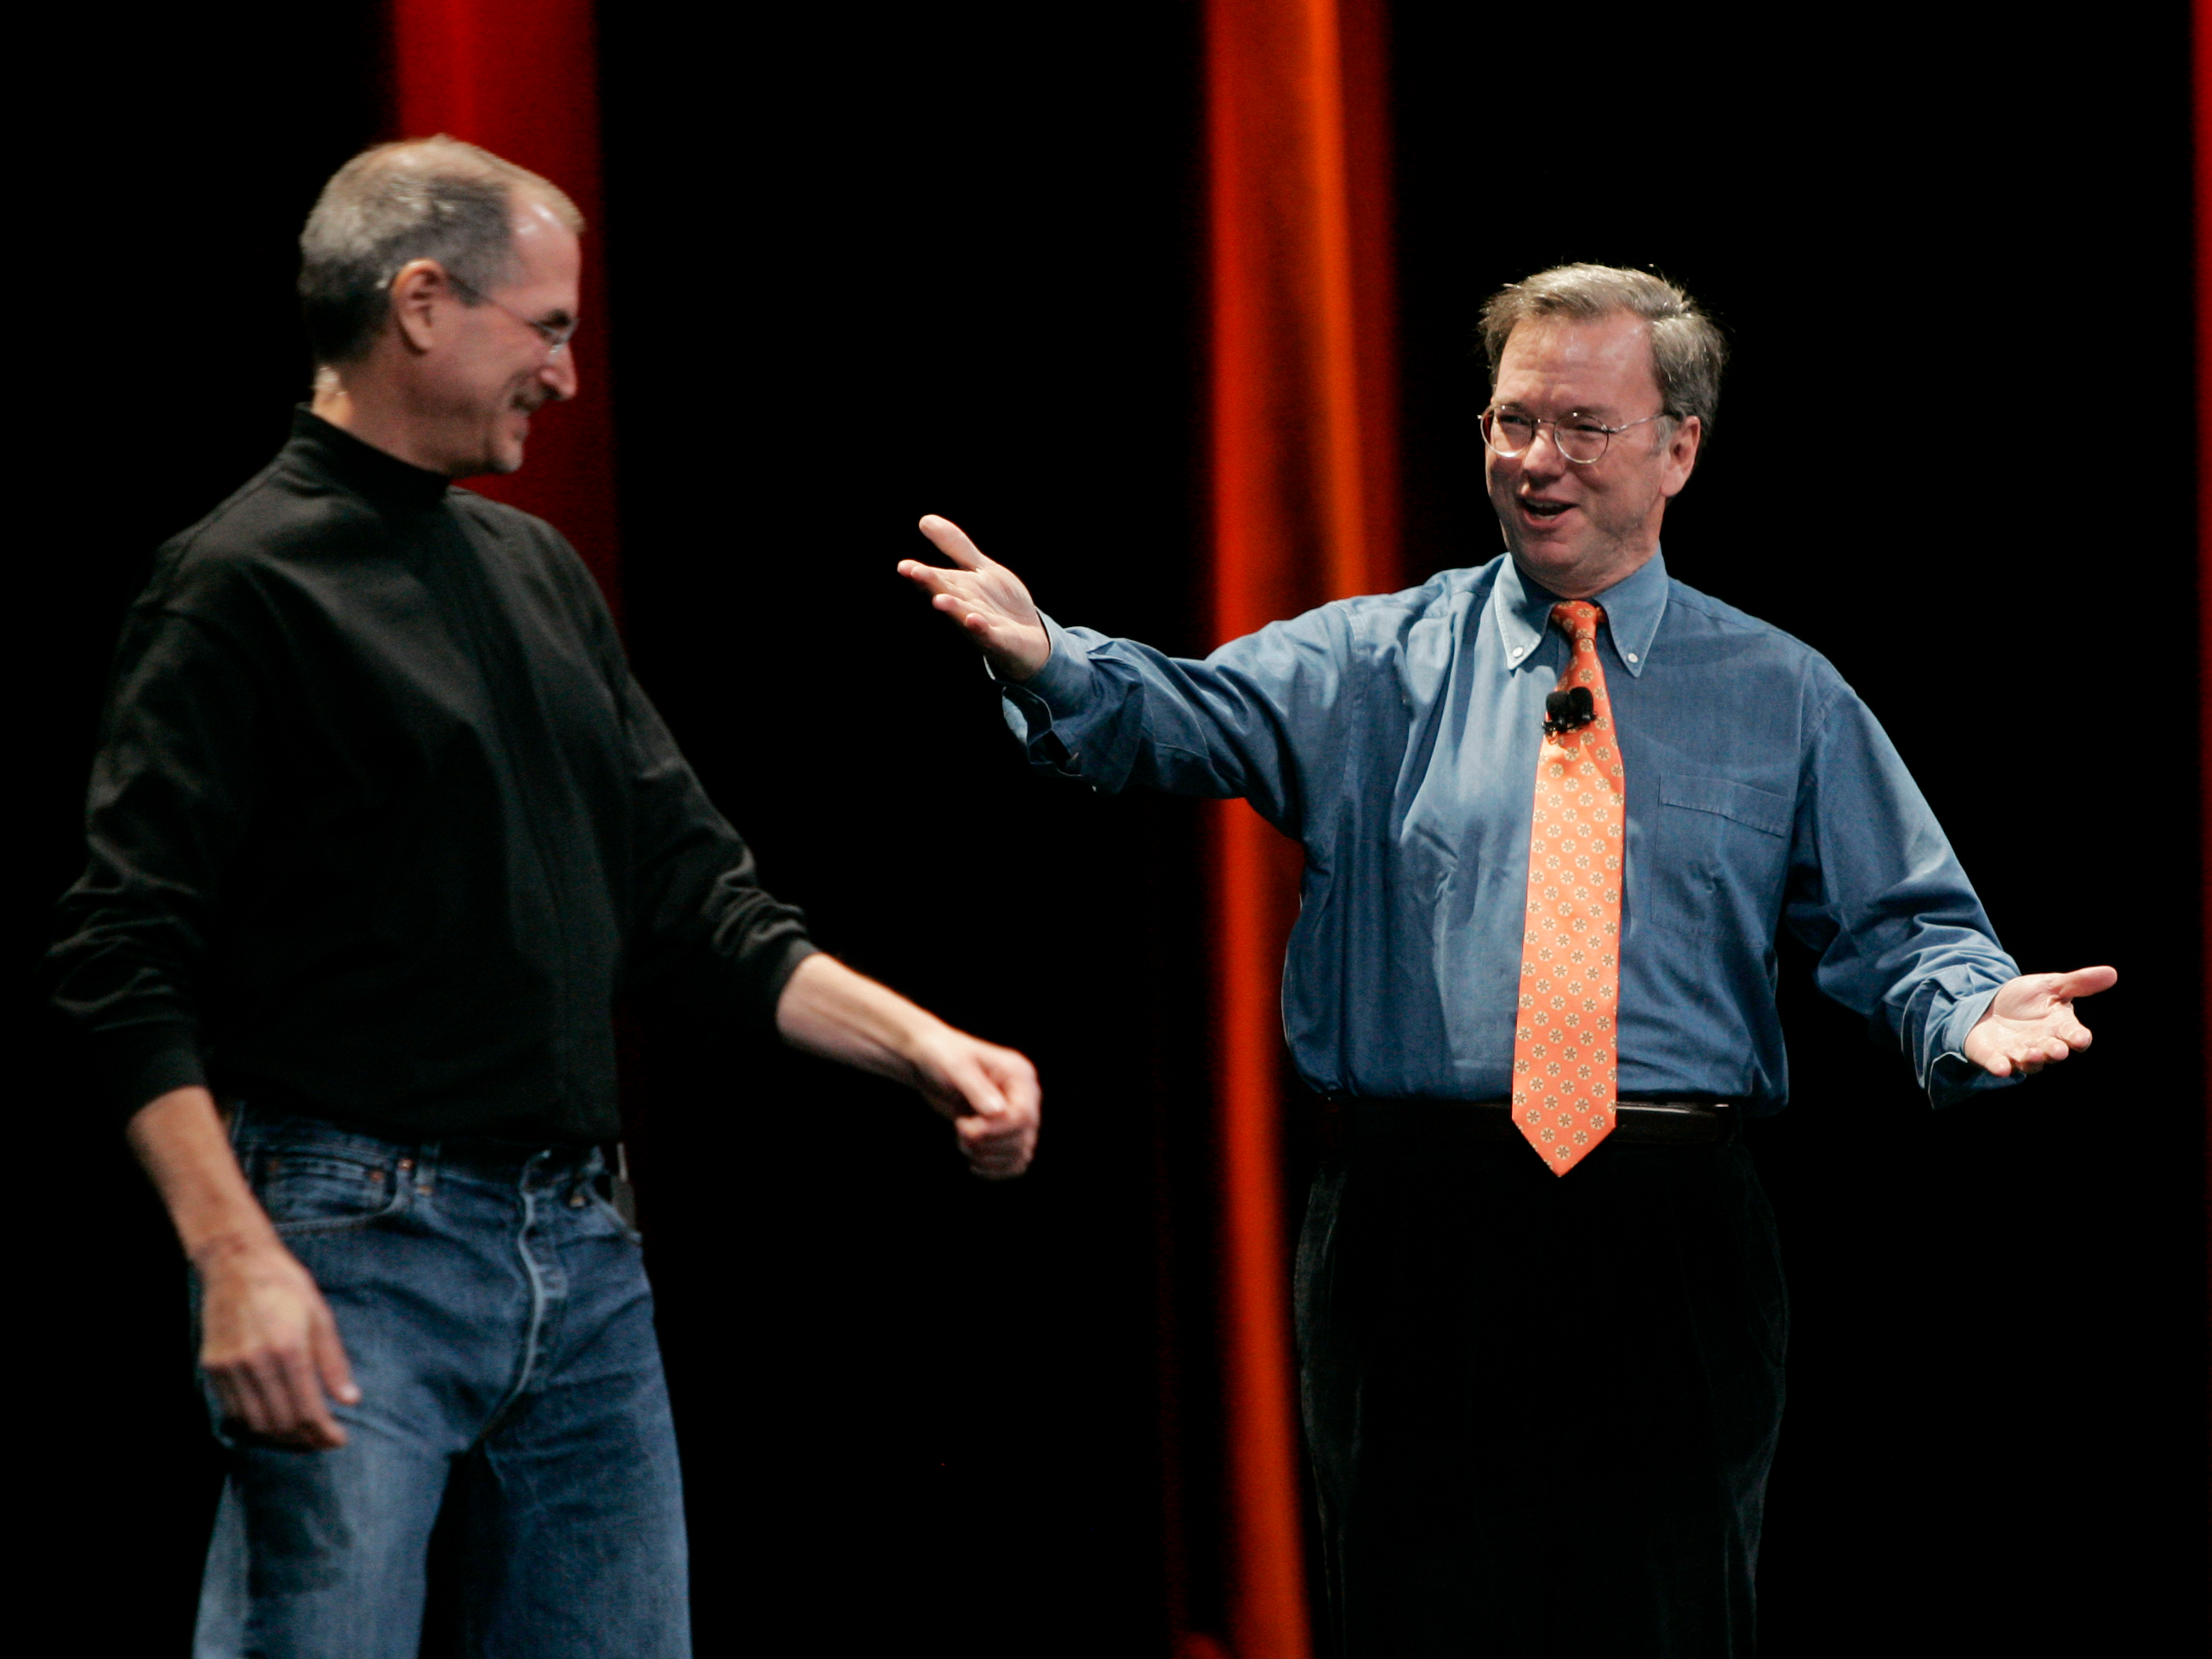 Steve Jobs and Eric Schmidt share the stage at the iPhone unveiling in 2007, both are happy.